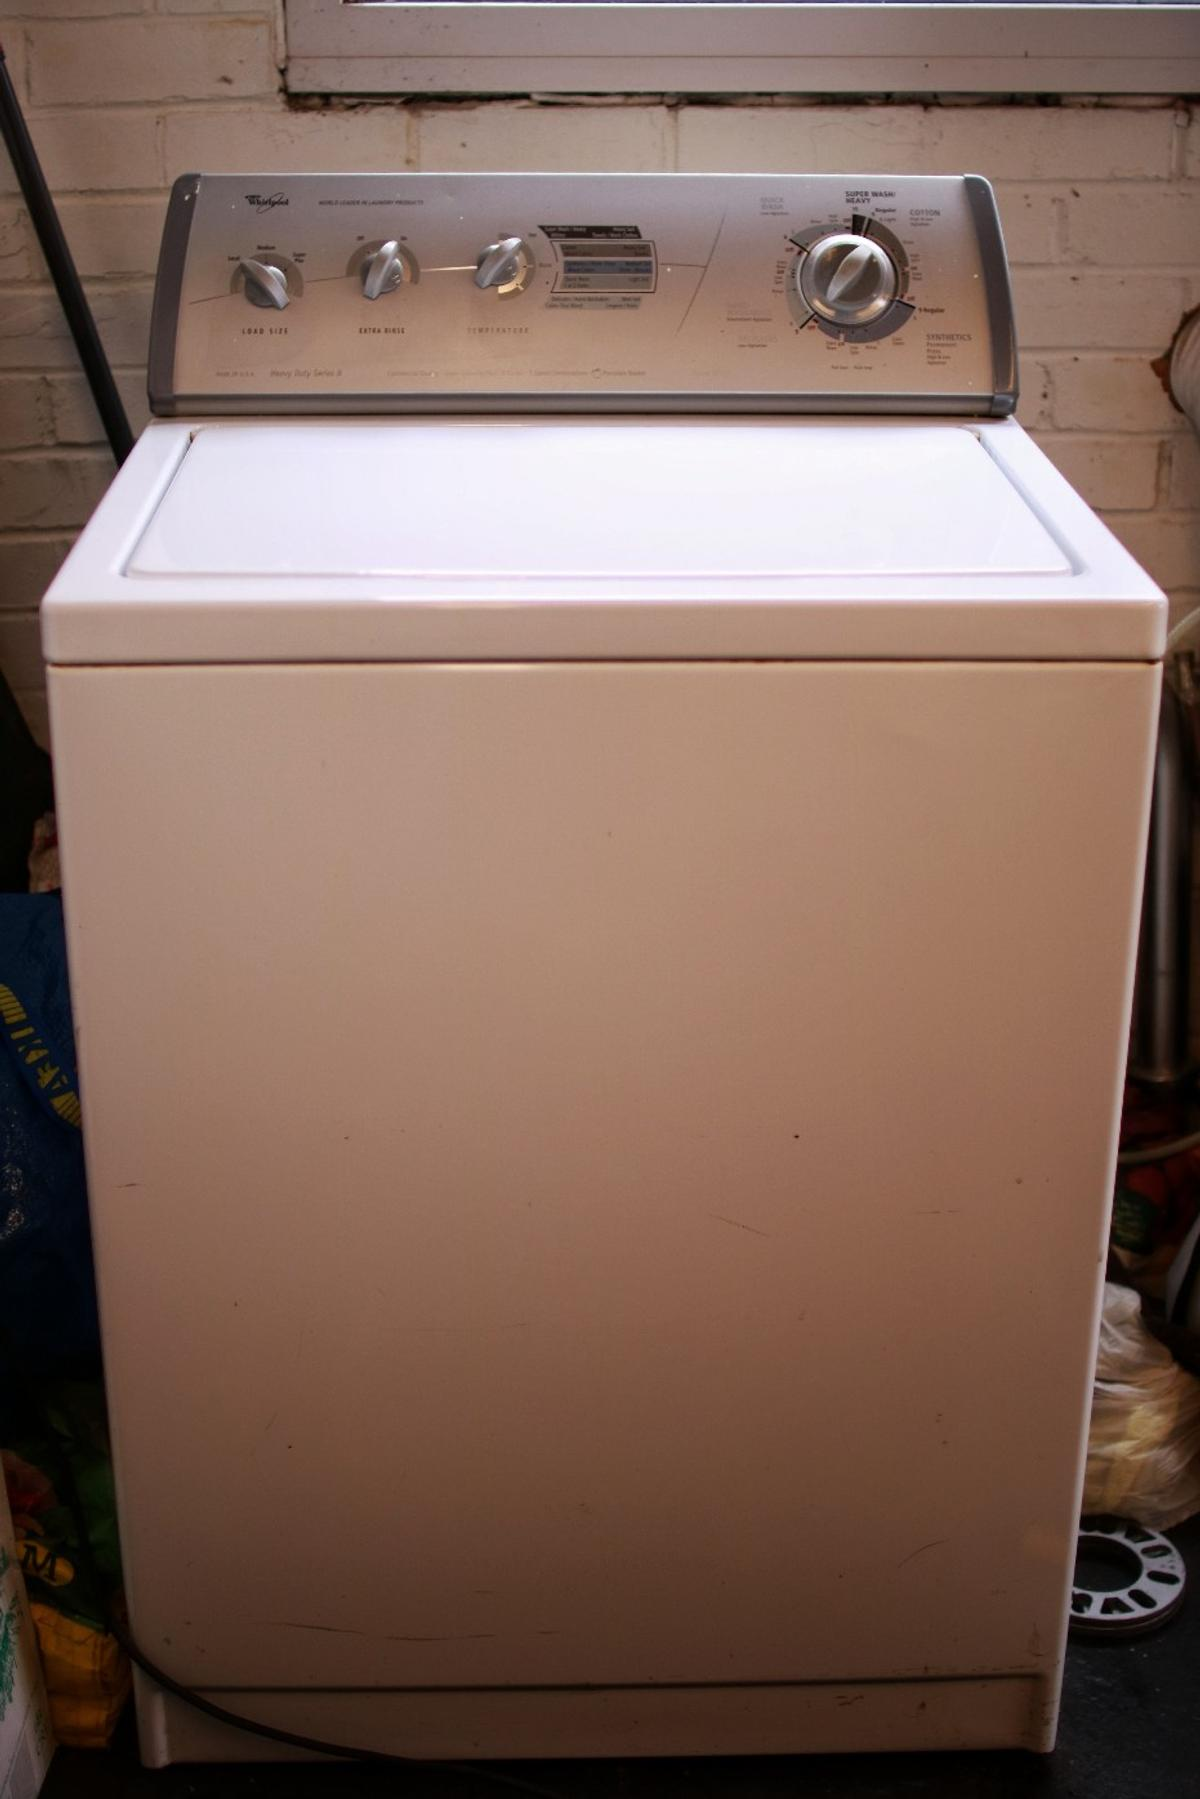 Whirlpool Sm8281115 A Washing Machine In Amber Valley Fur 100 00